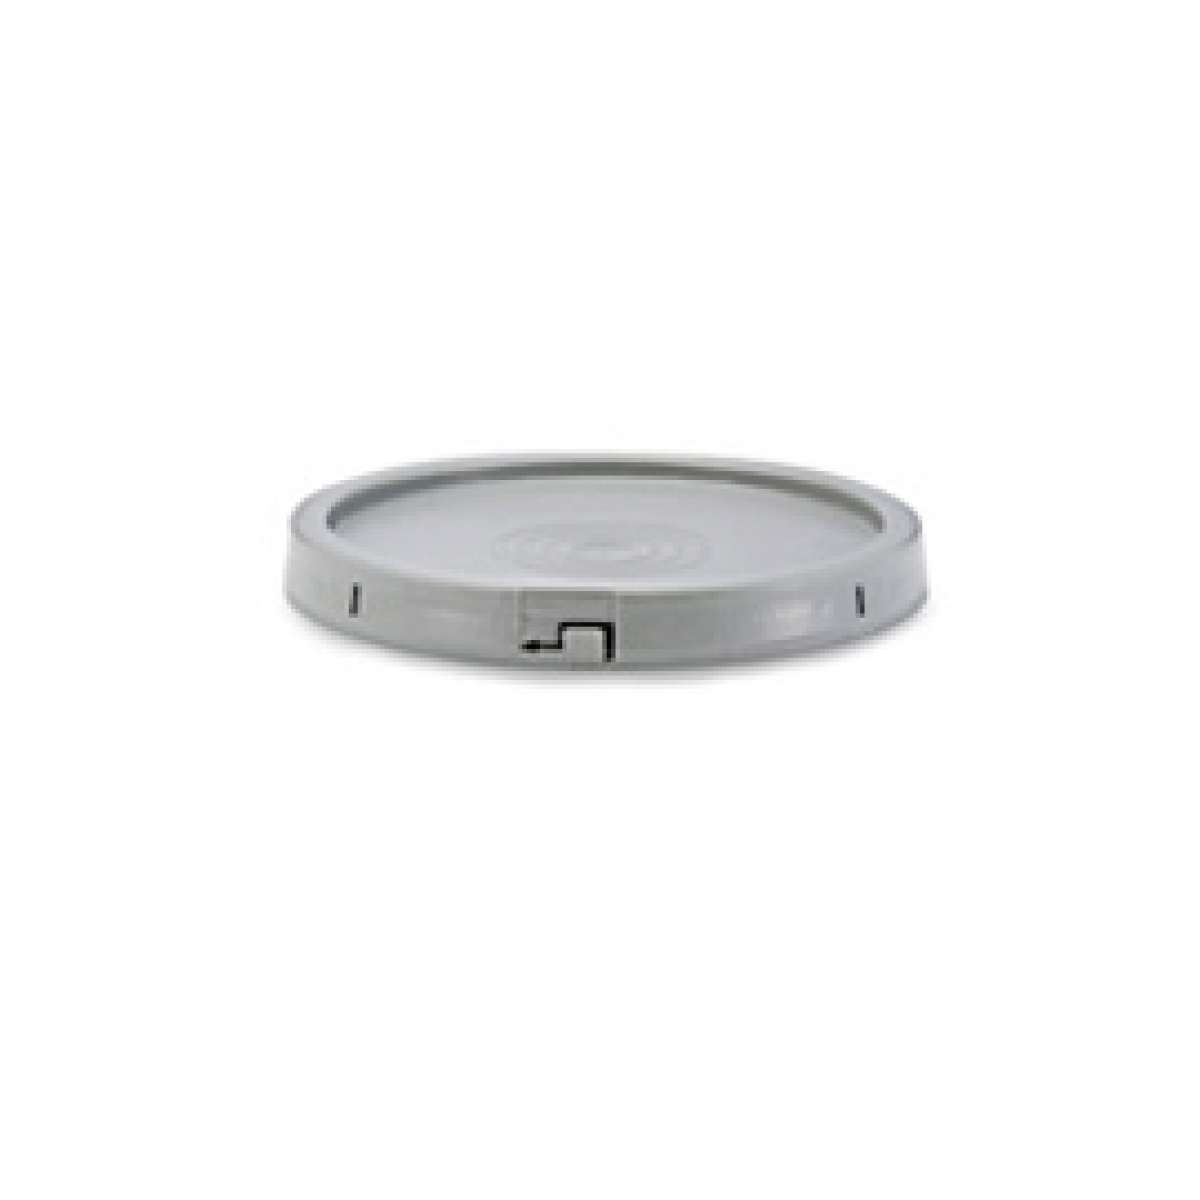 Lid for 5 Gallon Pail - Gray